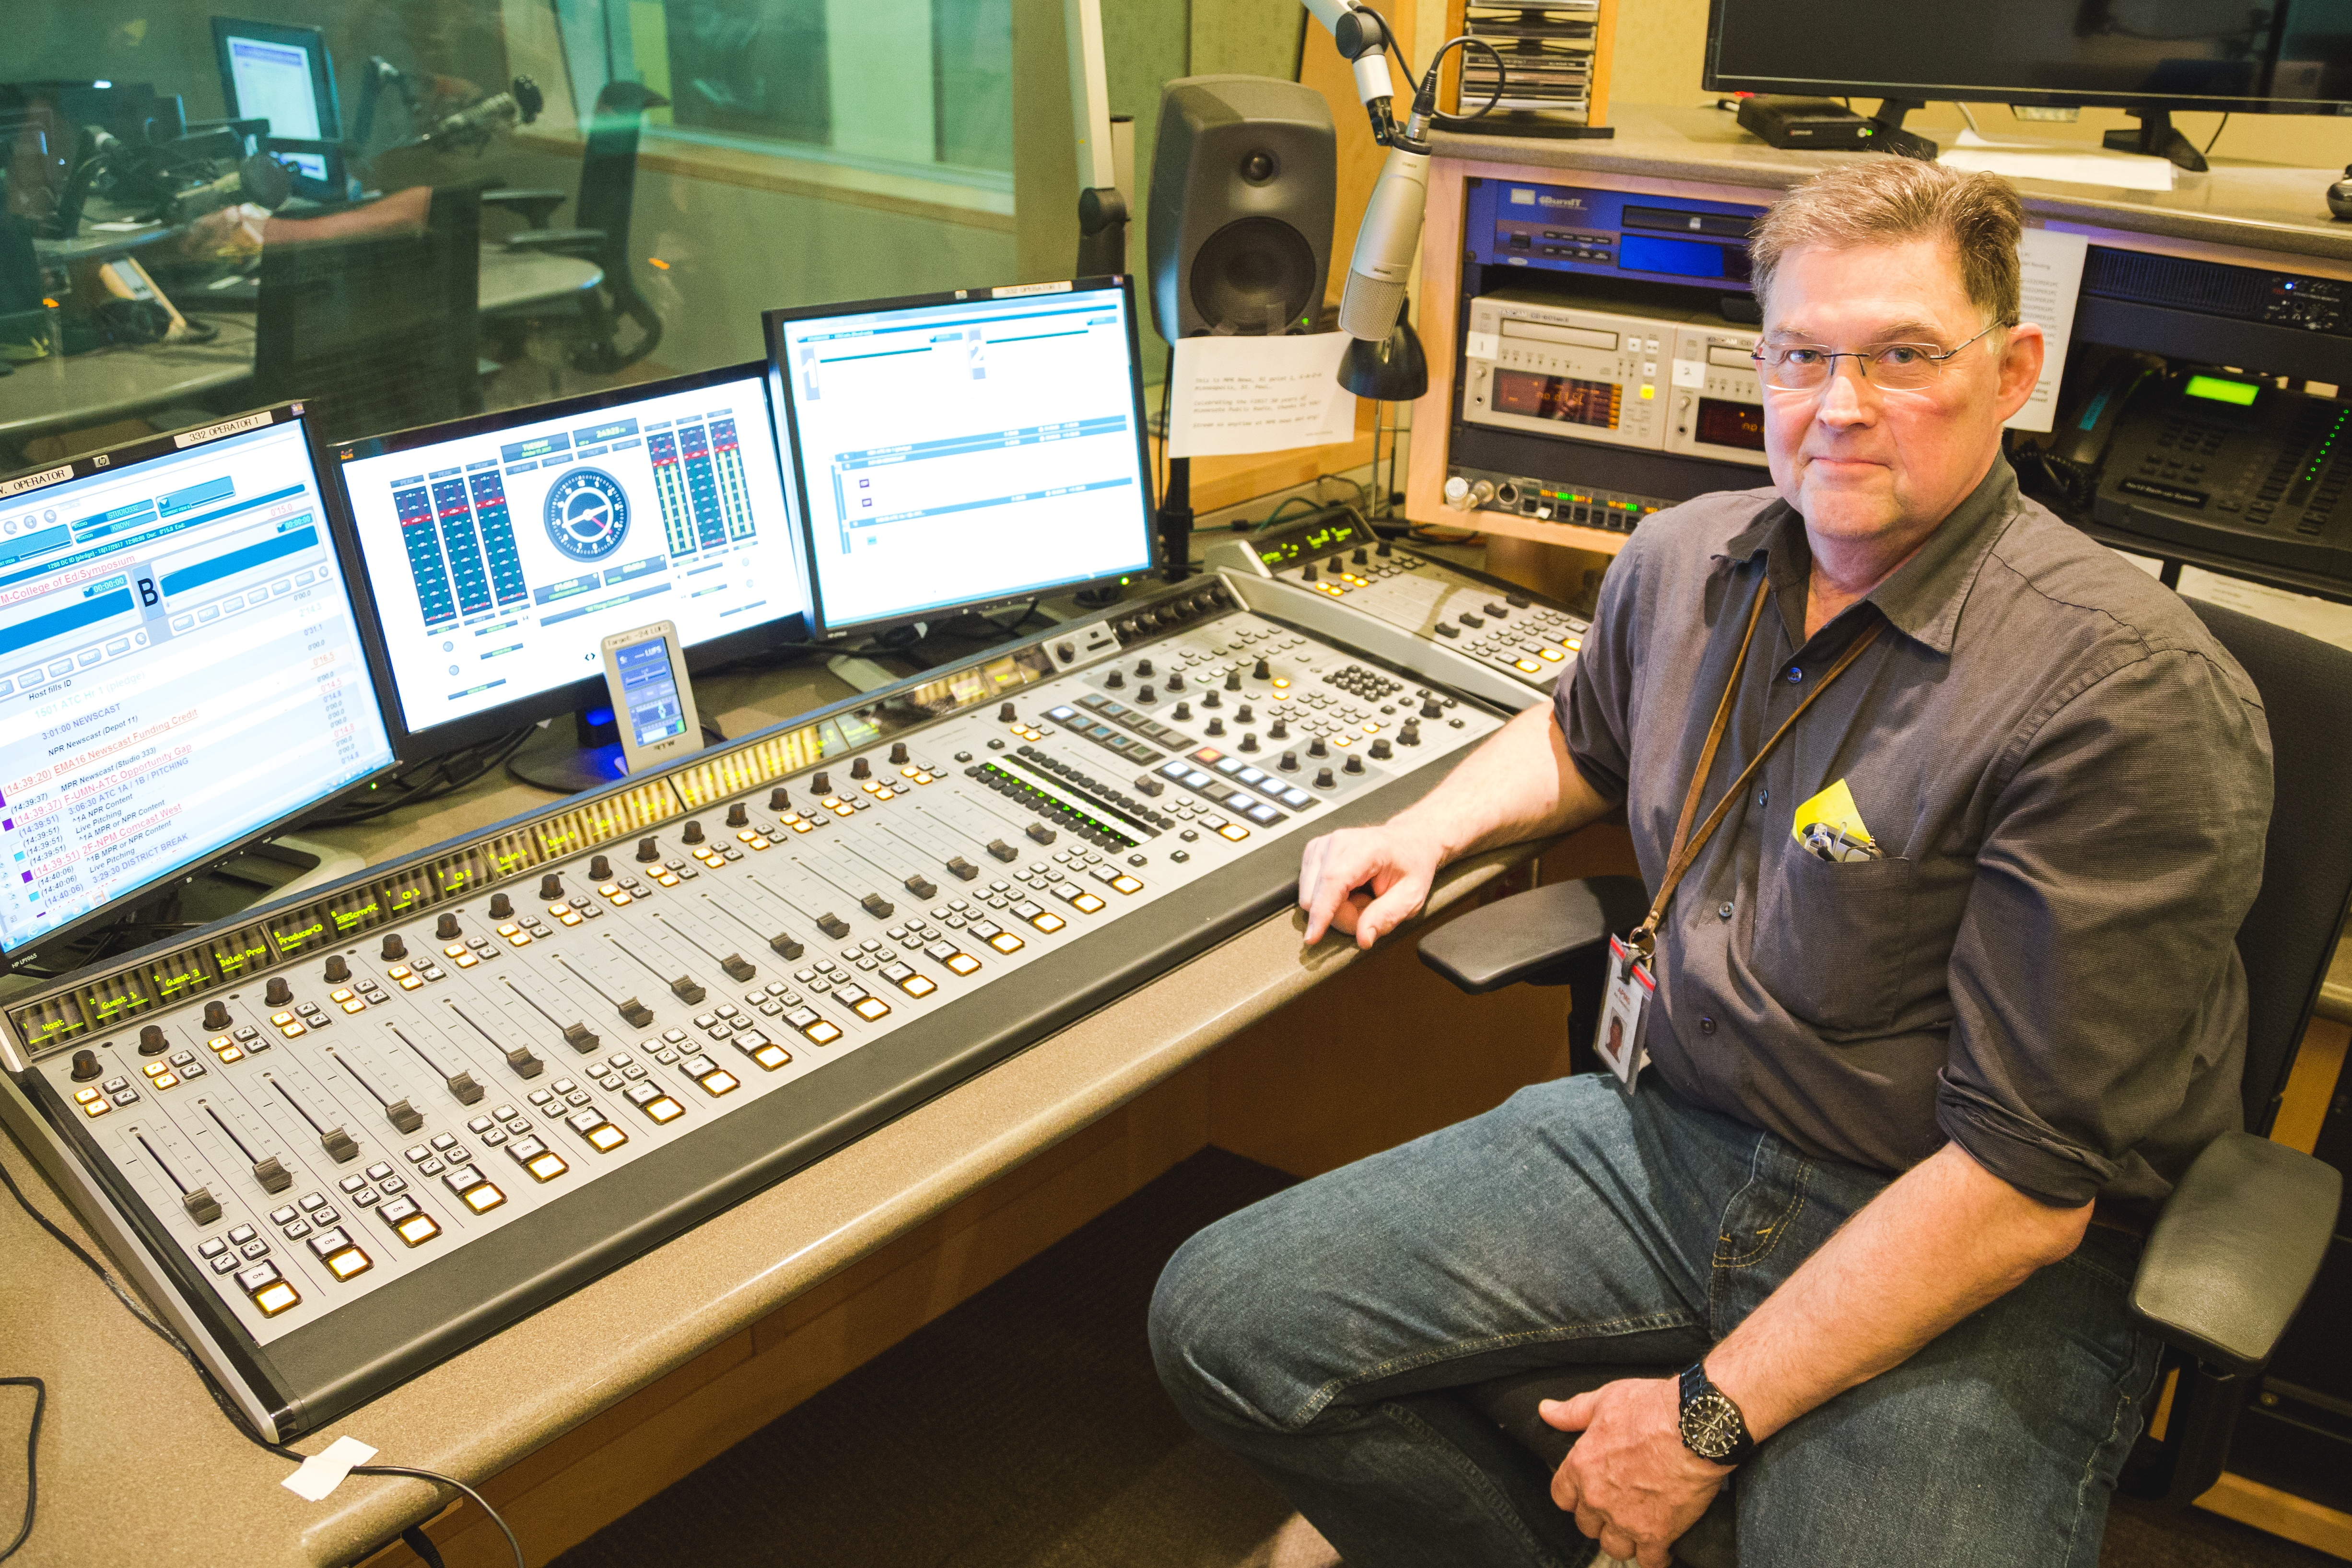 Minnesota Public Radio Sticks with Axia for Complete Facility Upgrade